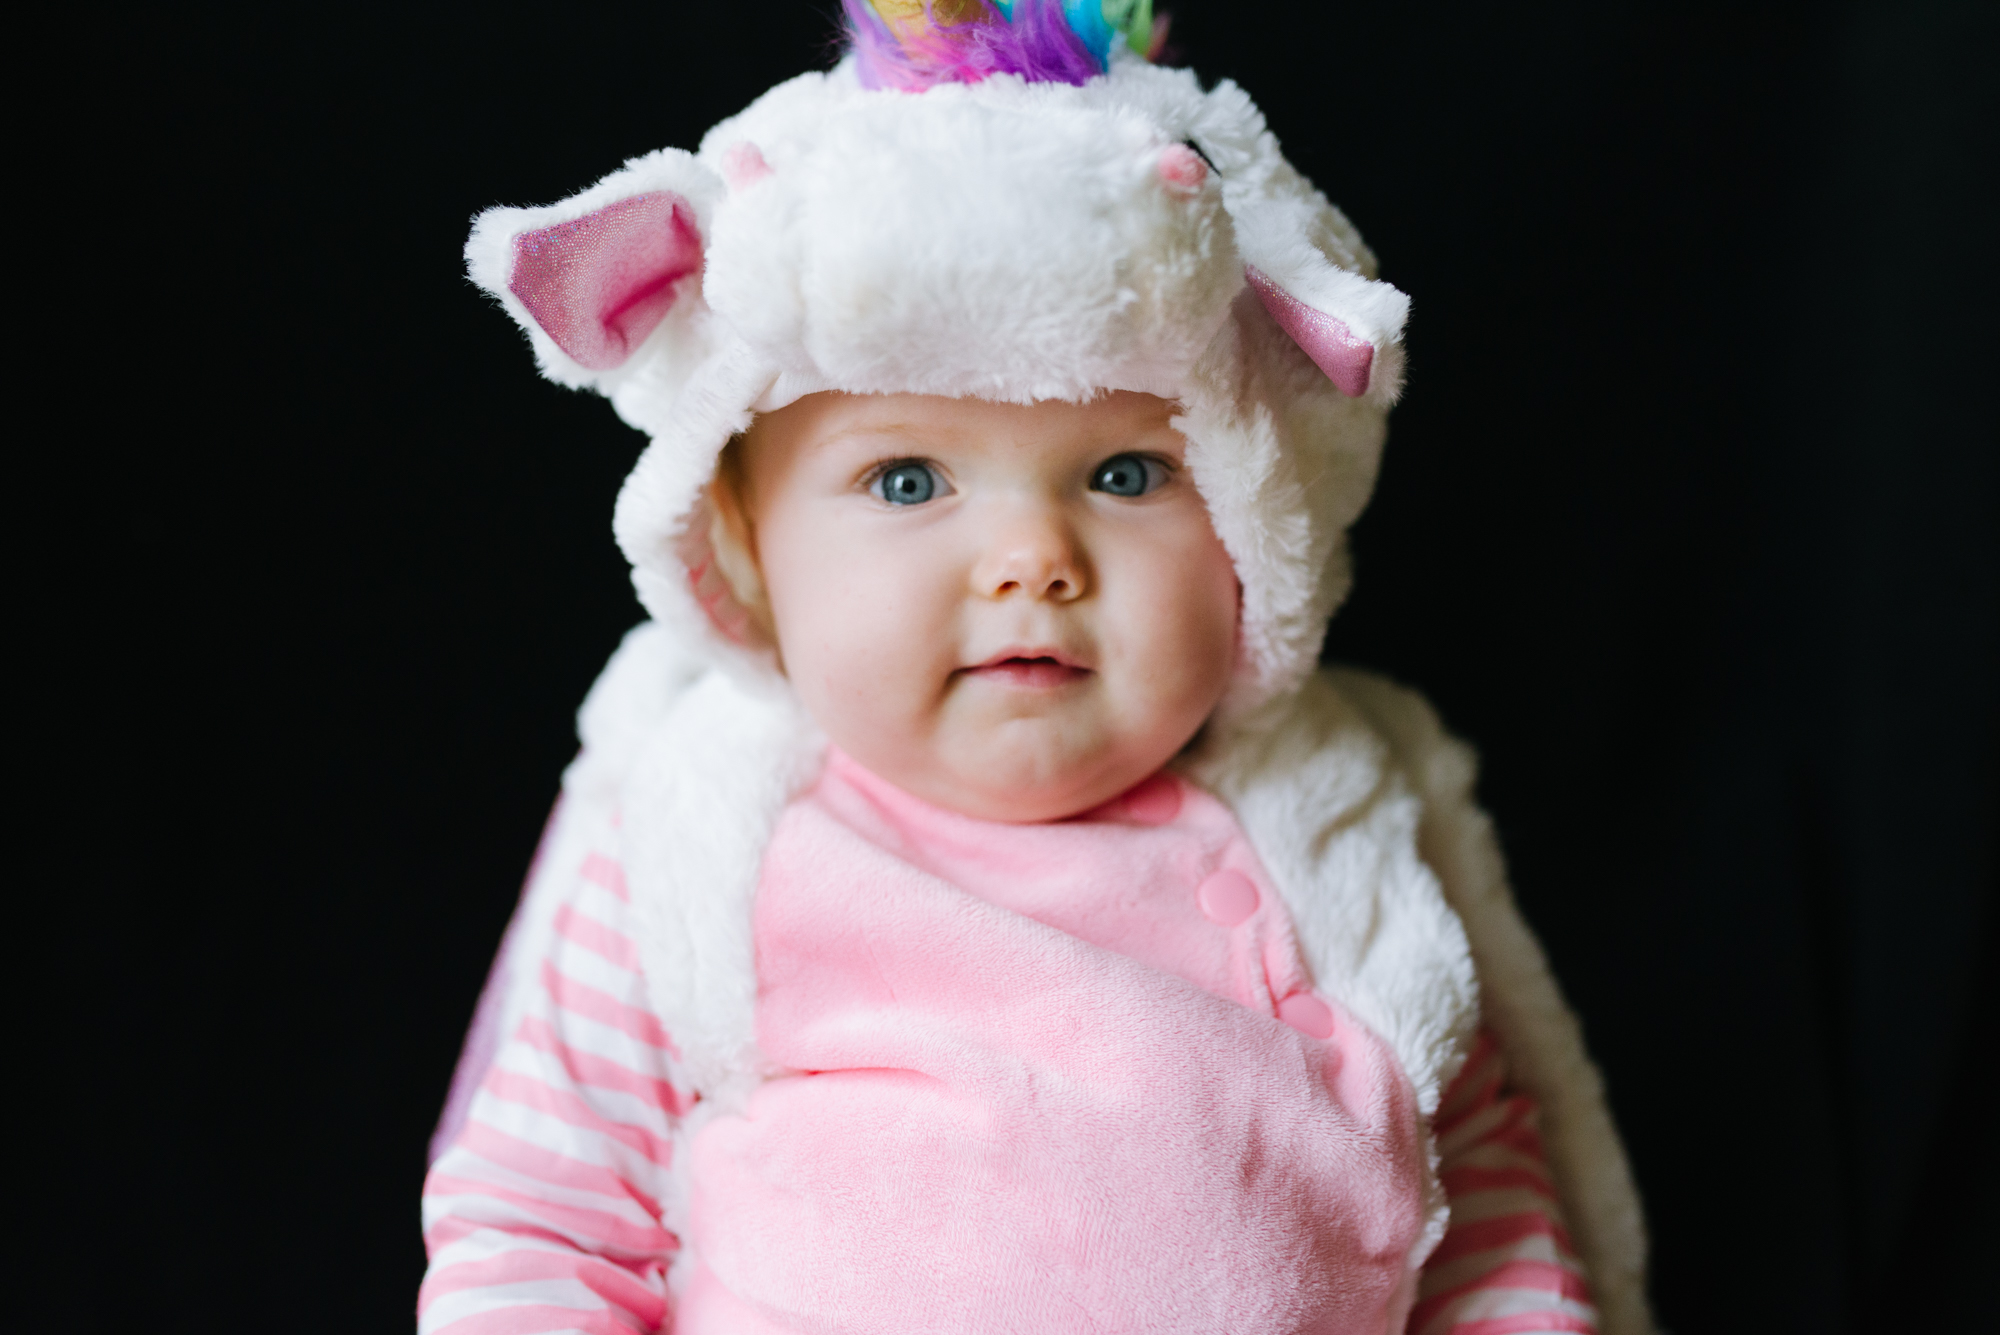 20171031-_DSC6761-portrait-child-unicorn-girl.jpg